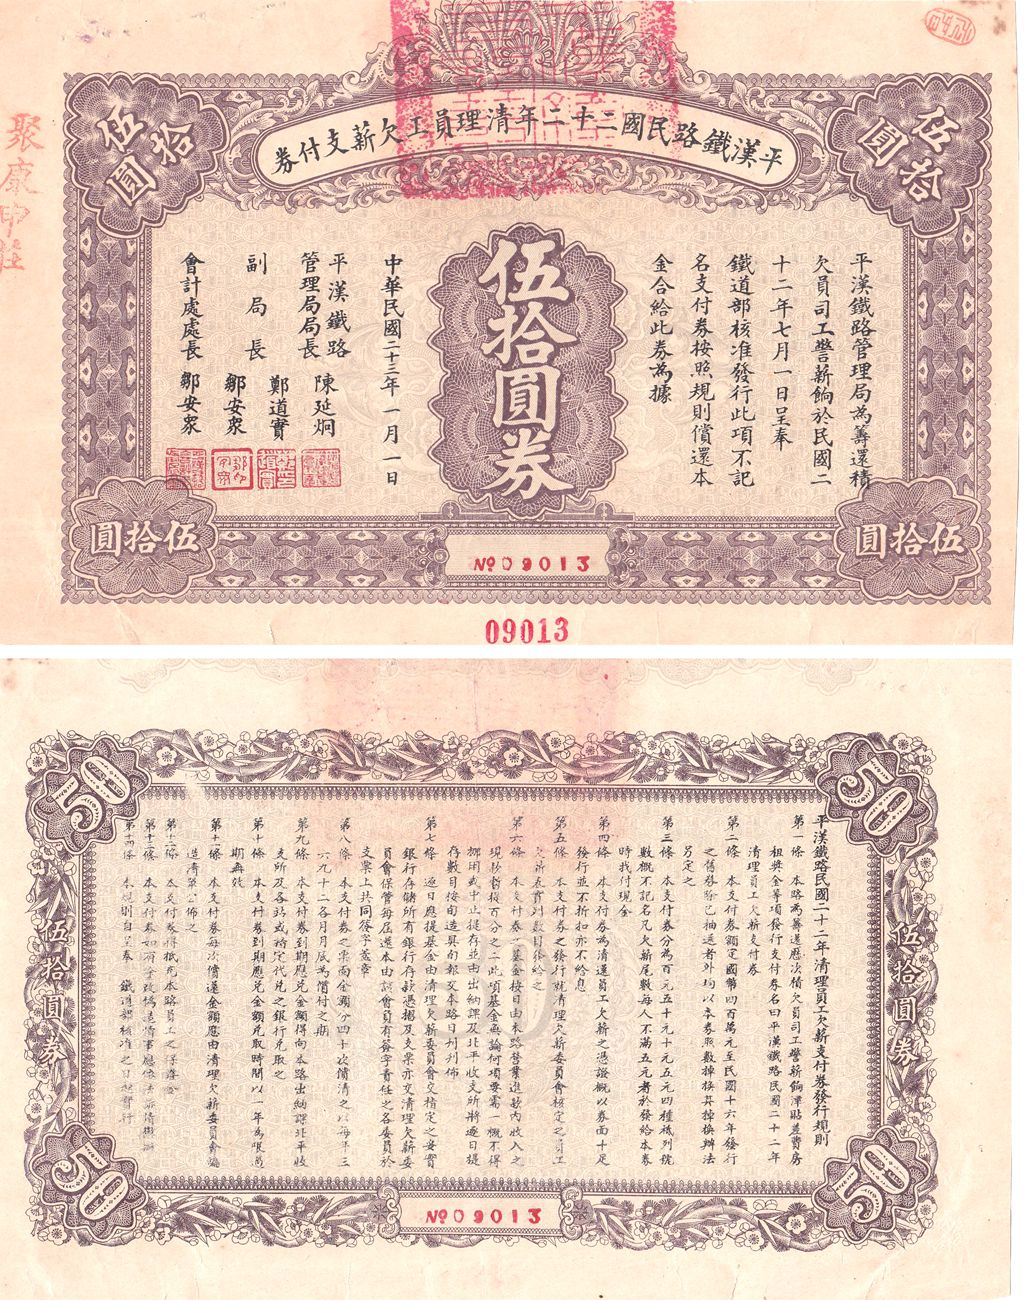 B3017, China Peking-Hankow Railway Zero-Interest Bond, 50 Dollars 1933